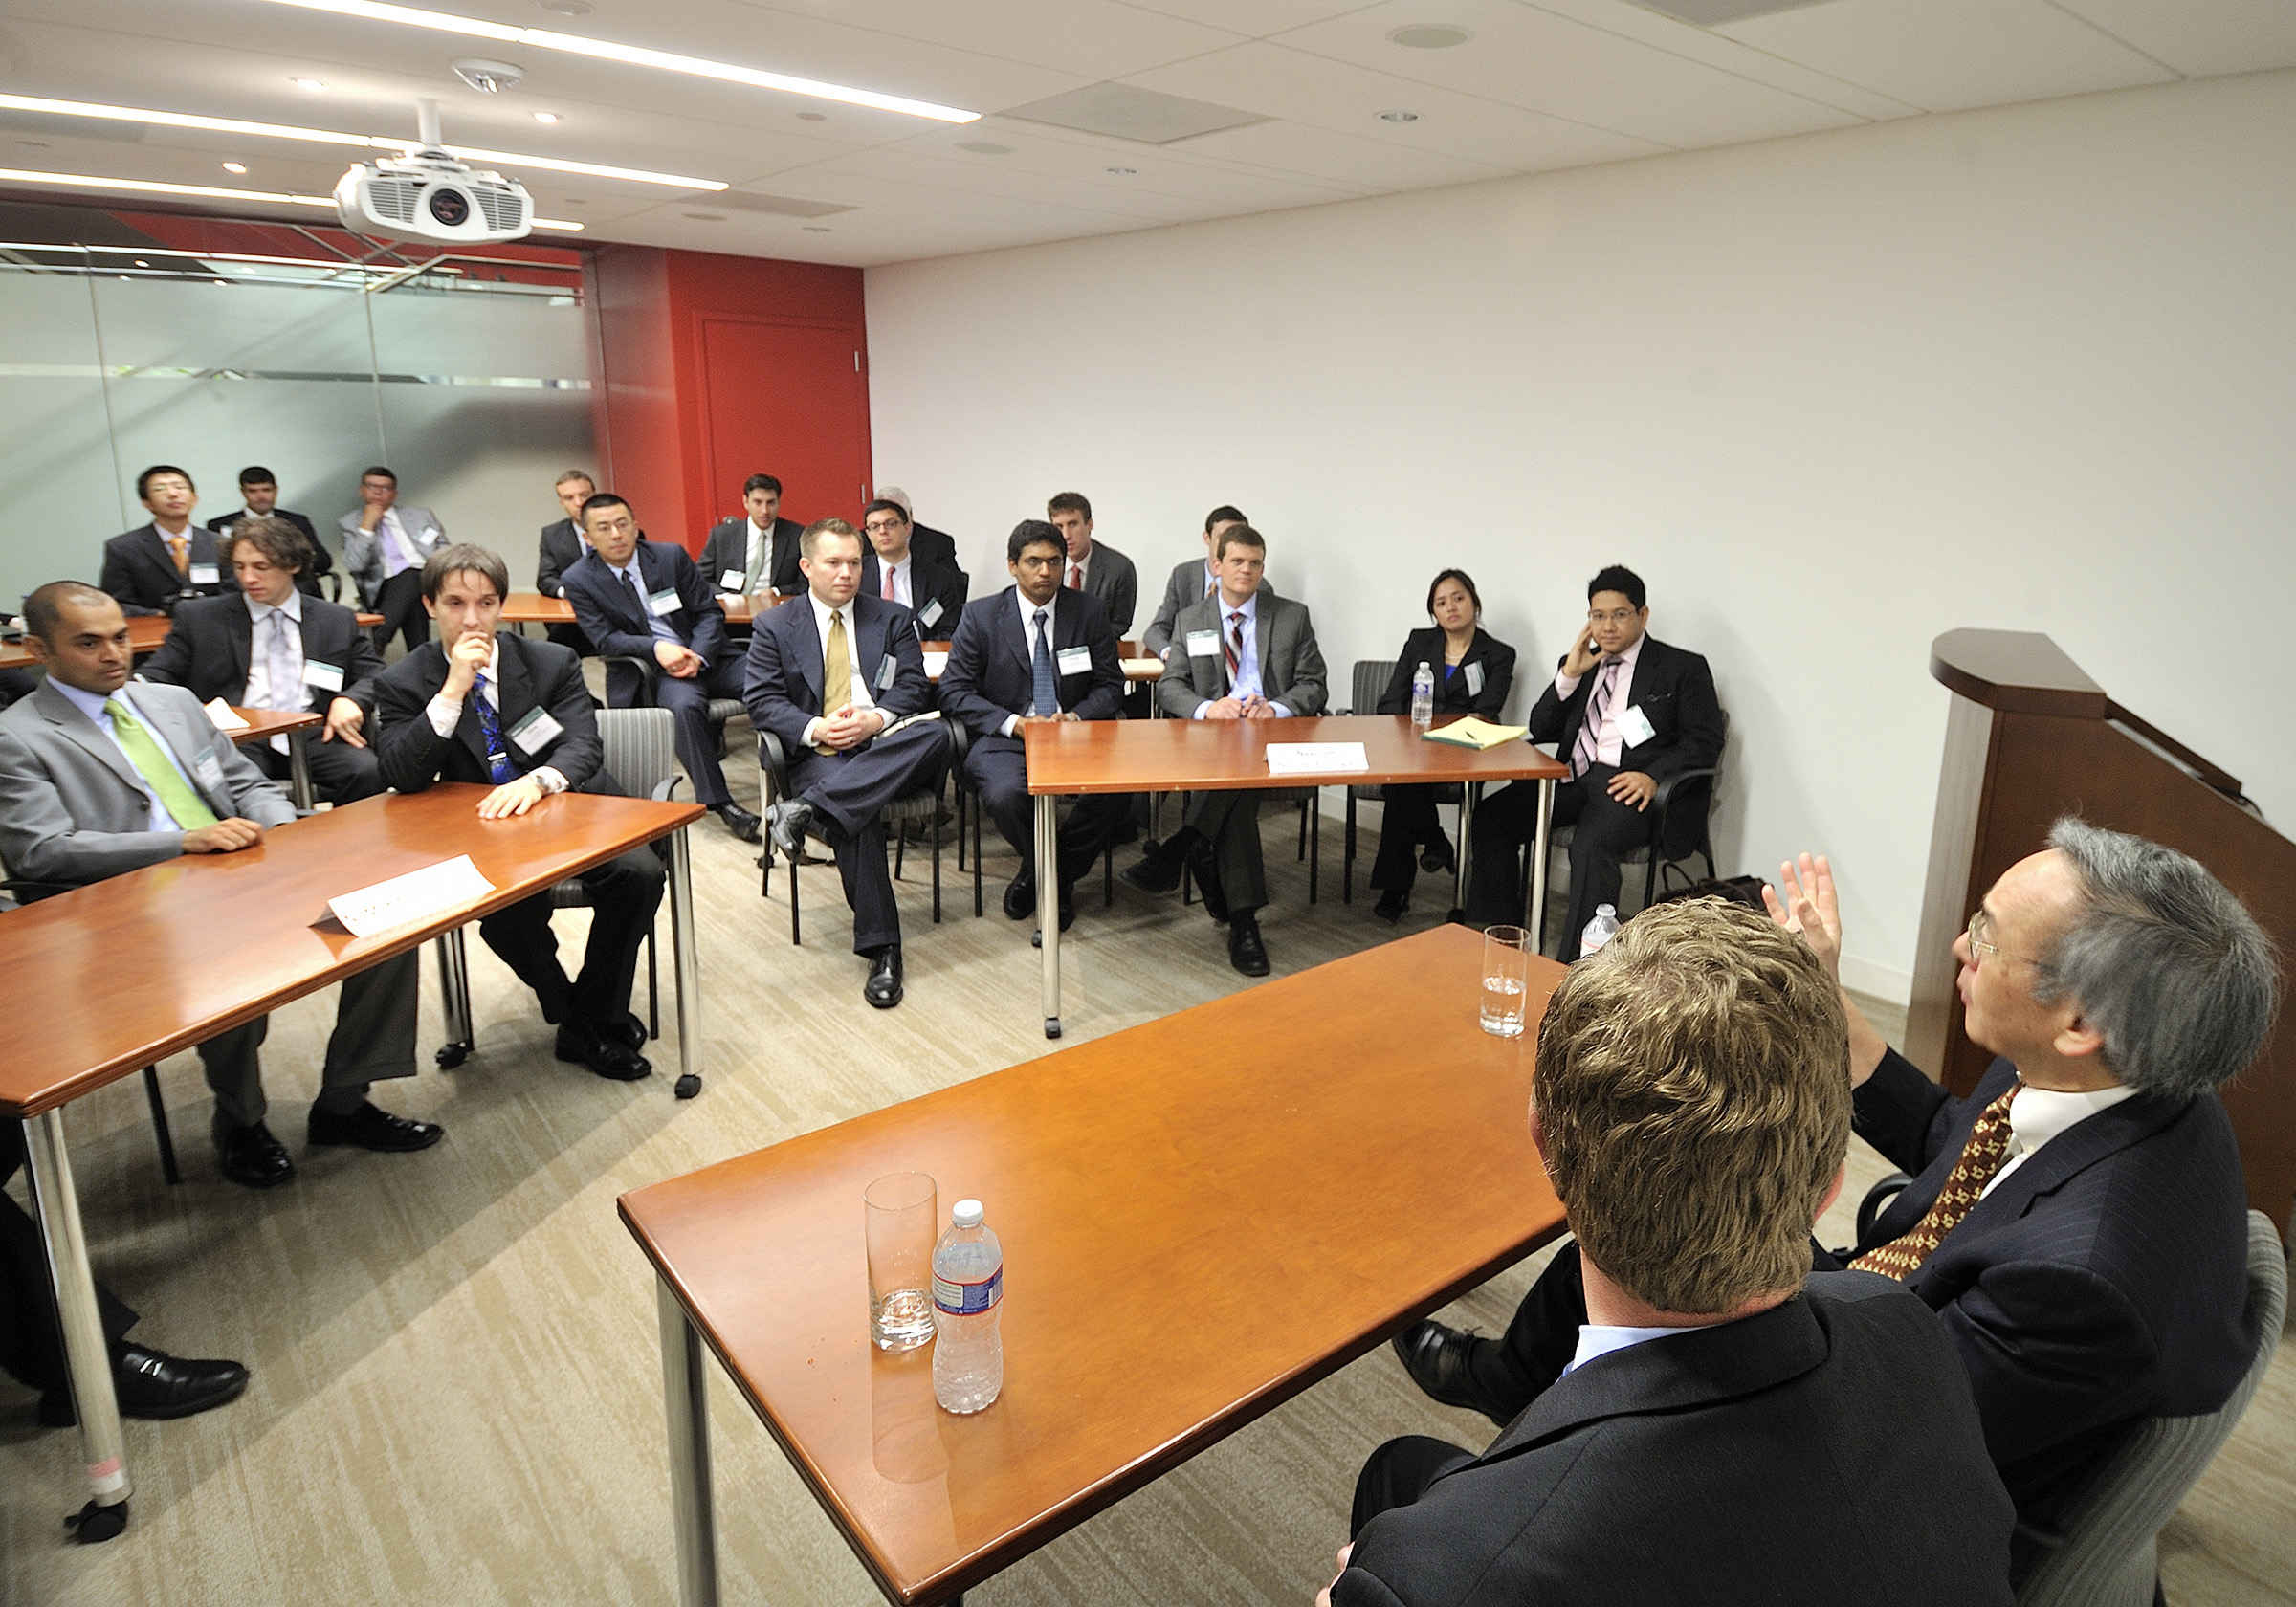 Students at the David Eccles School of Business have numerous opportunities to get involved with entrepreneurship. Picture are MBA students attending a panel discussion led by U.S. Secretary of Energy Steven Chu in Washington, D.C.